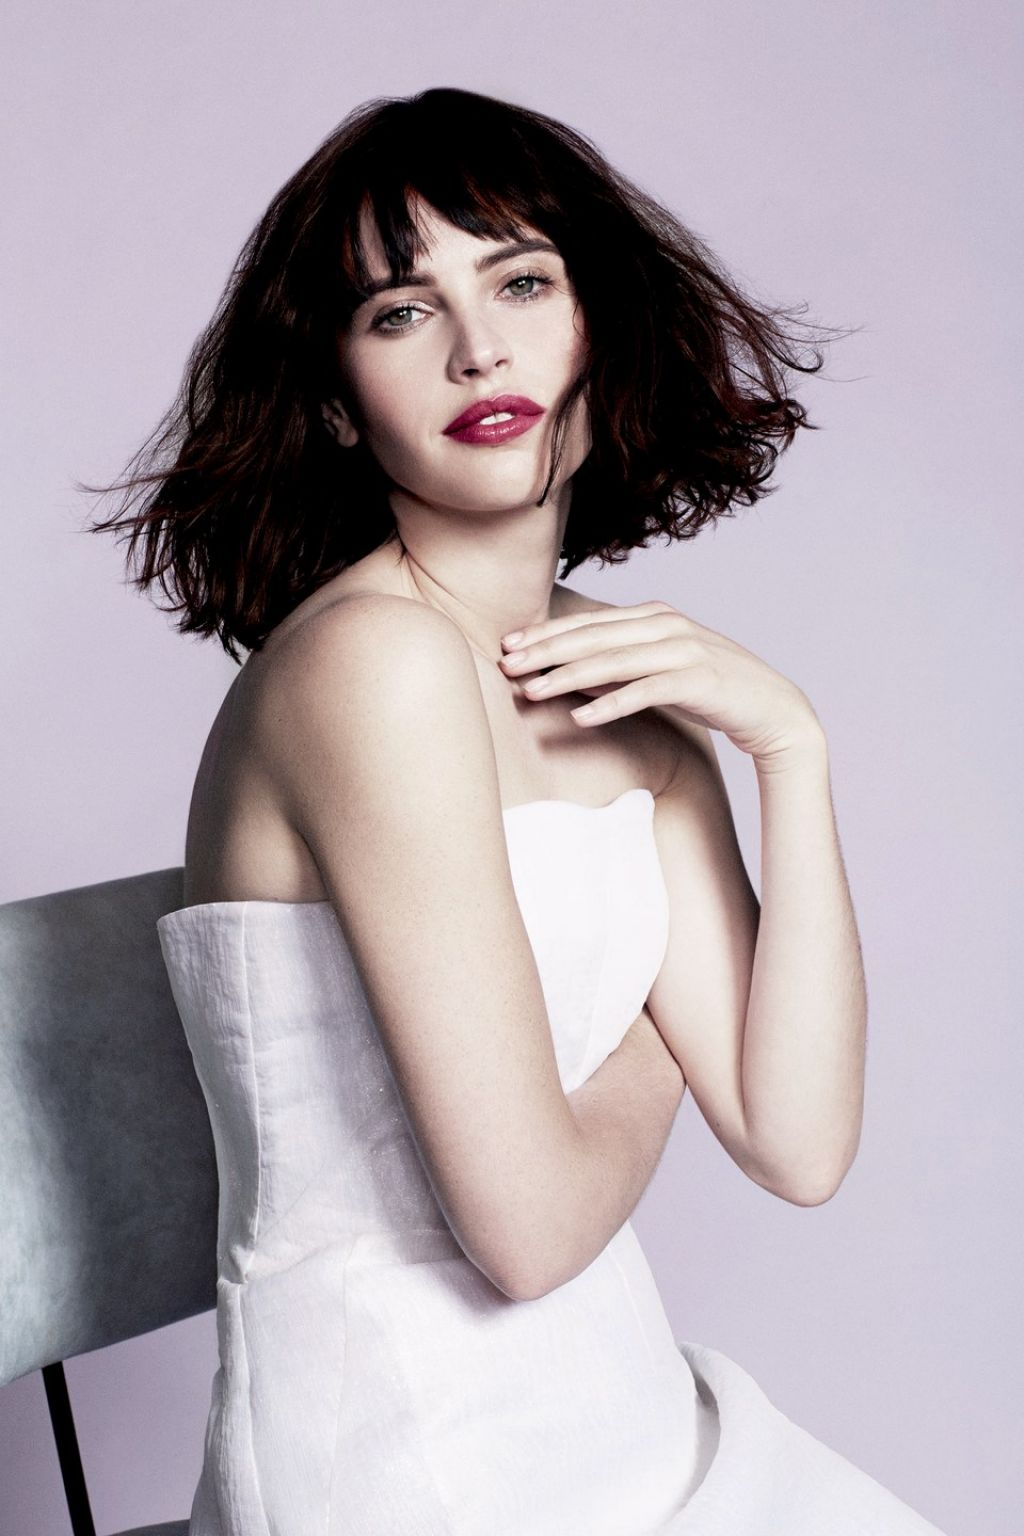 Felicity Jones - Photoshoot for You Magazine - February 2014 Issue